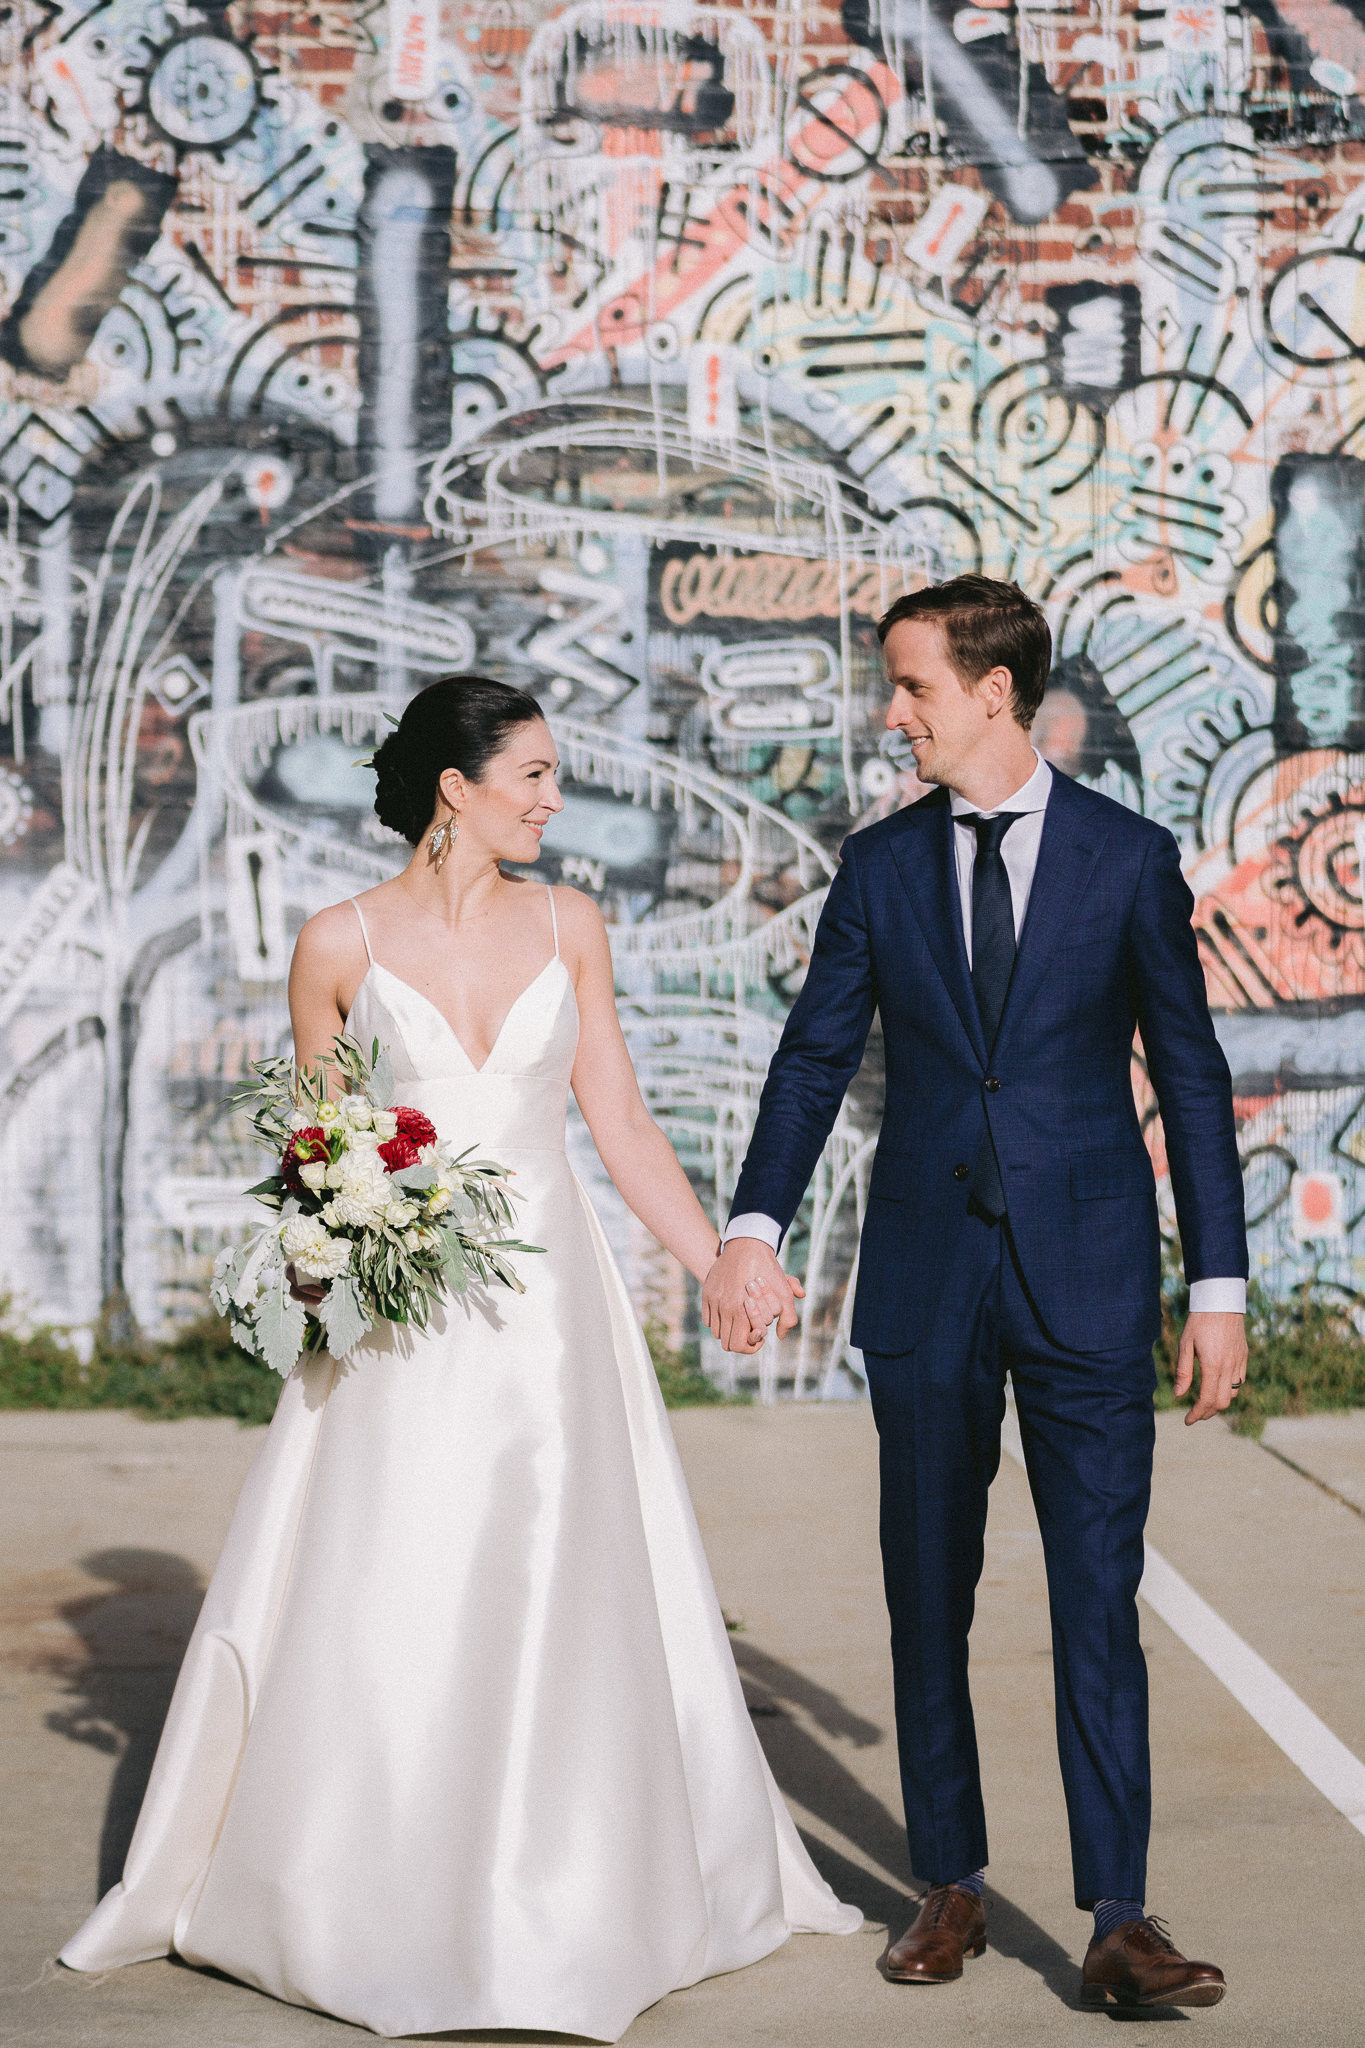 wedding photo of bride and groom holding hands in front of a graffiti wall in San Francisco, CA.